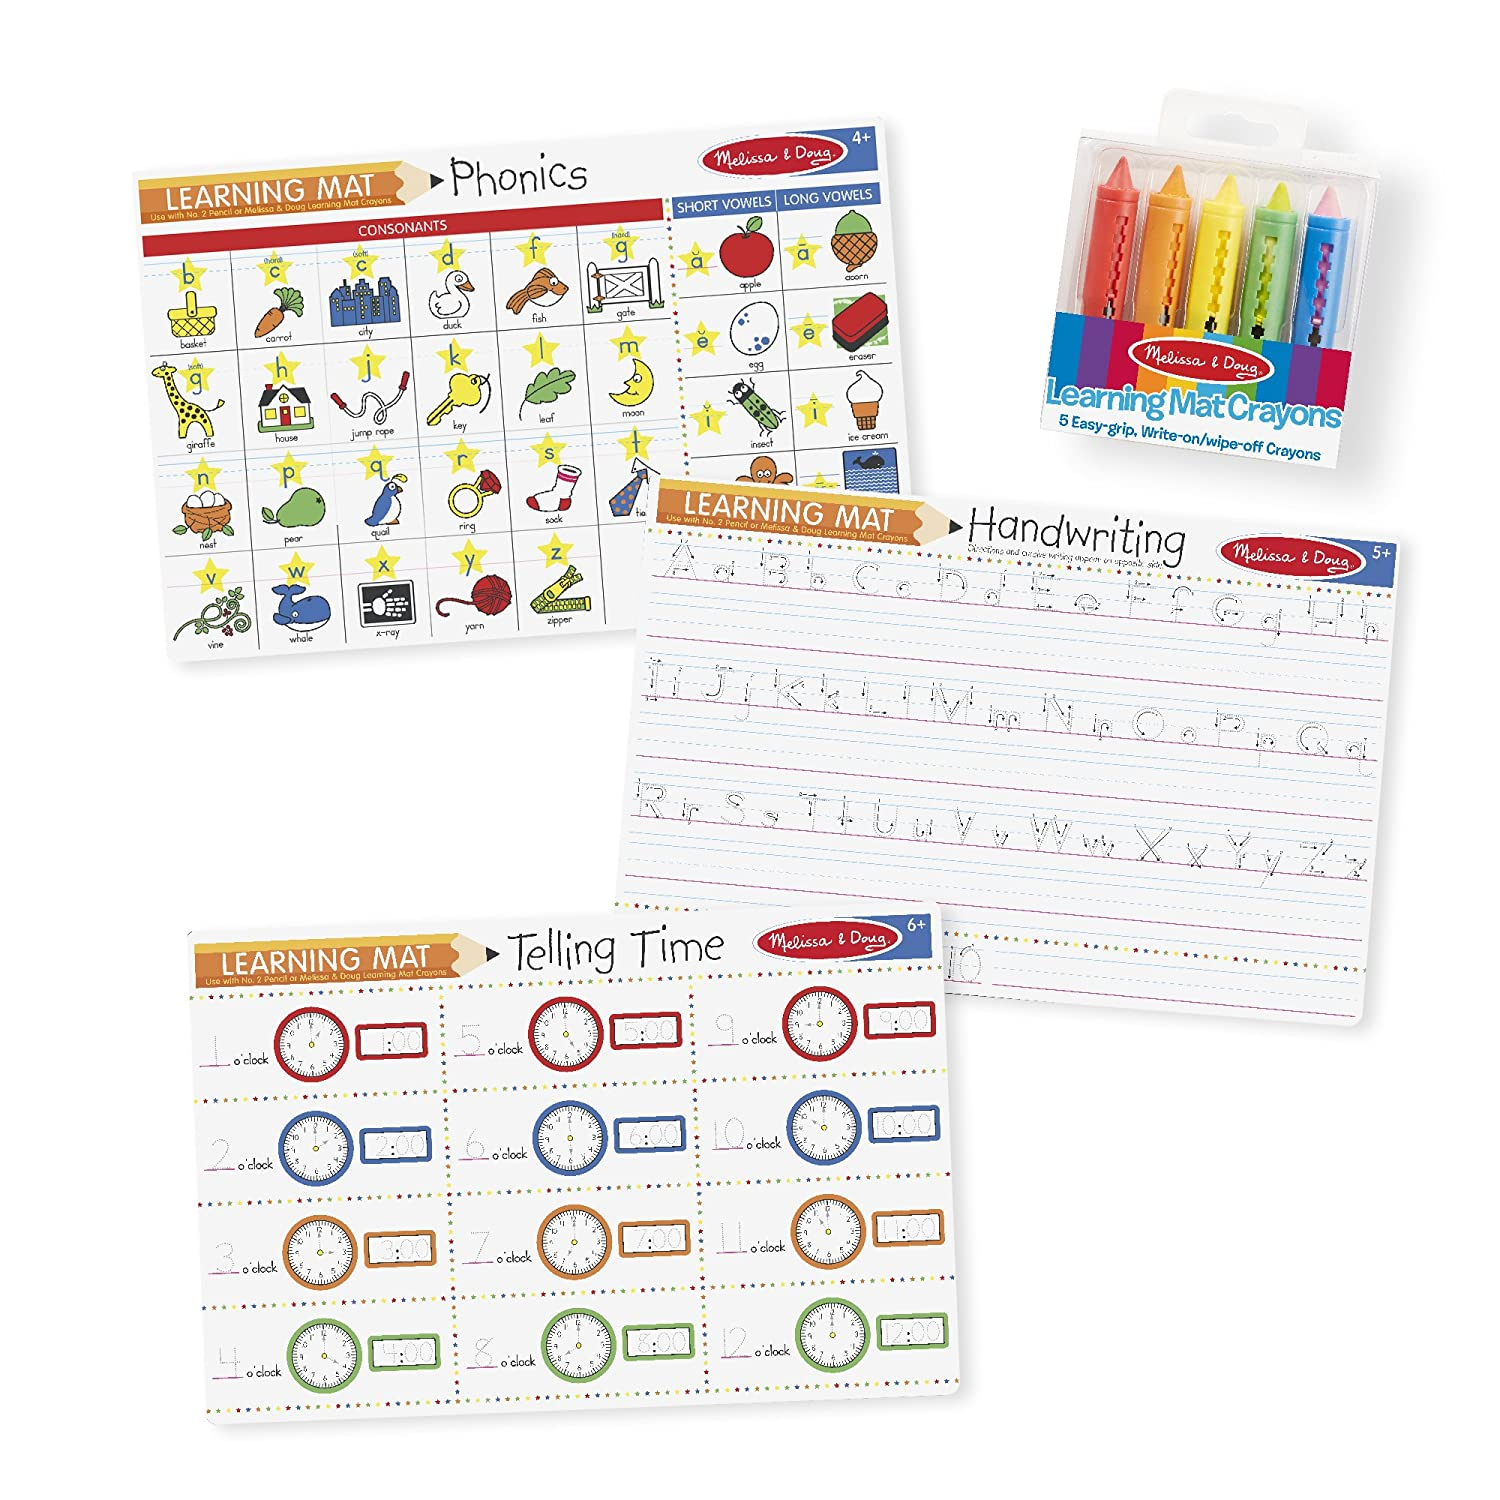 Melissa & Doug Basic Skills Placemat Set - Phonics, Handwriting, and Telling Time 5105